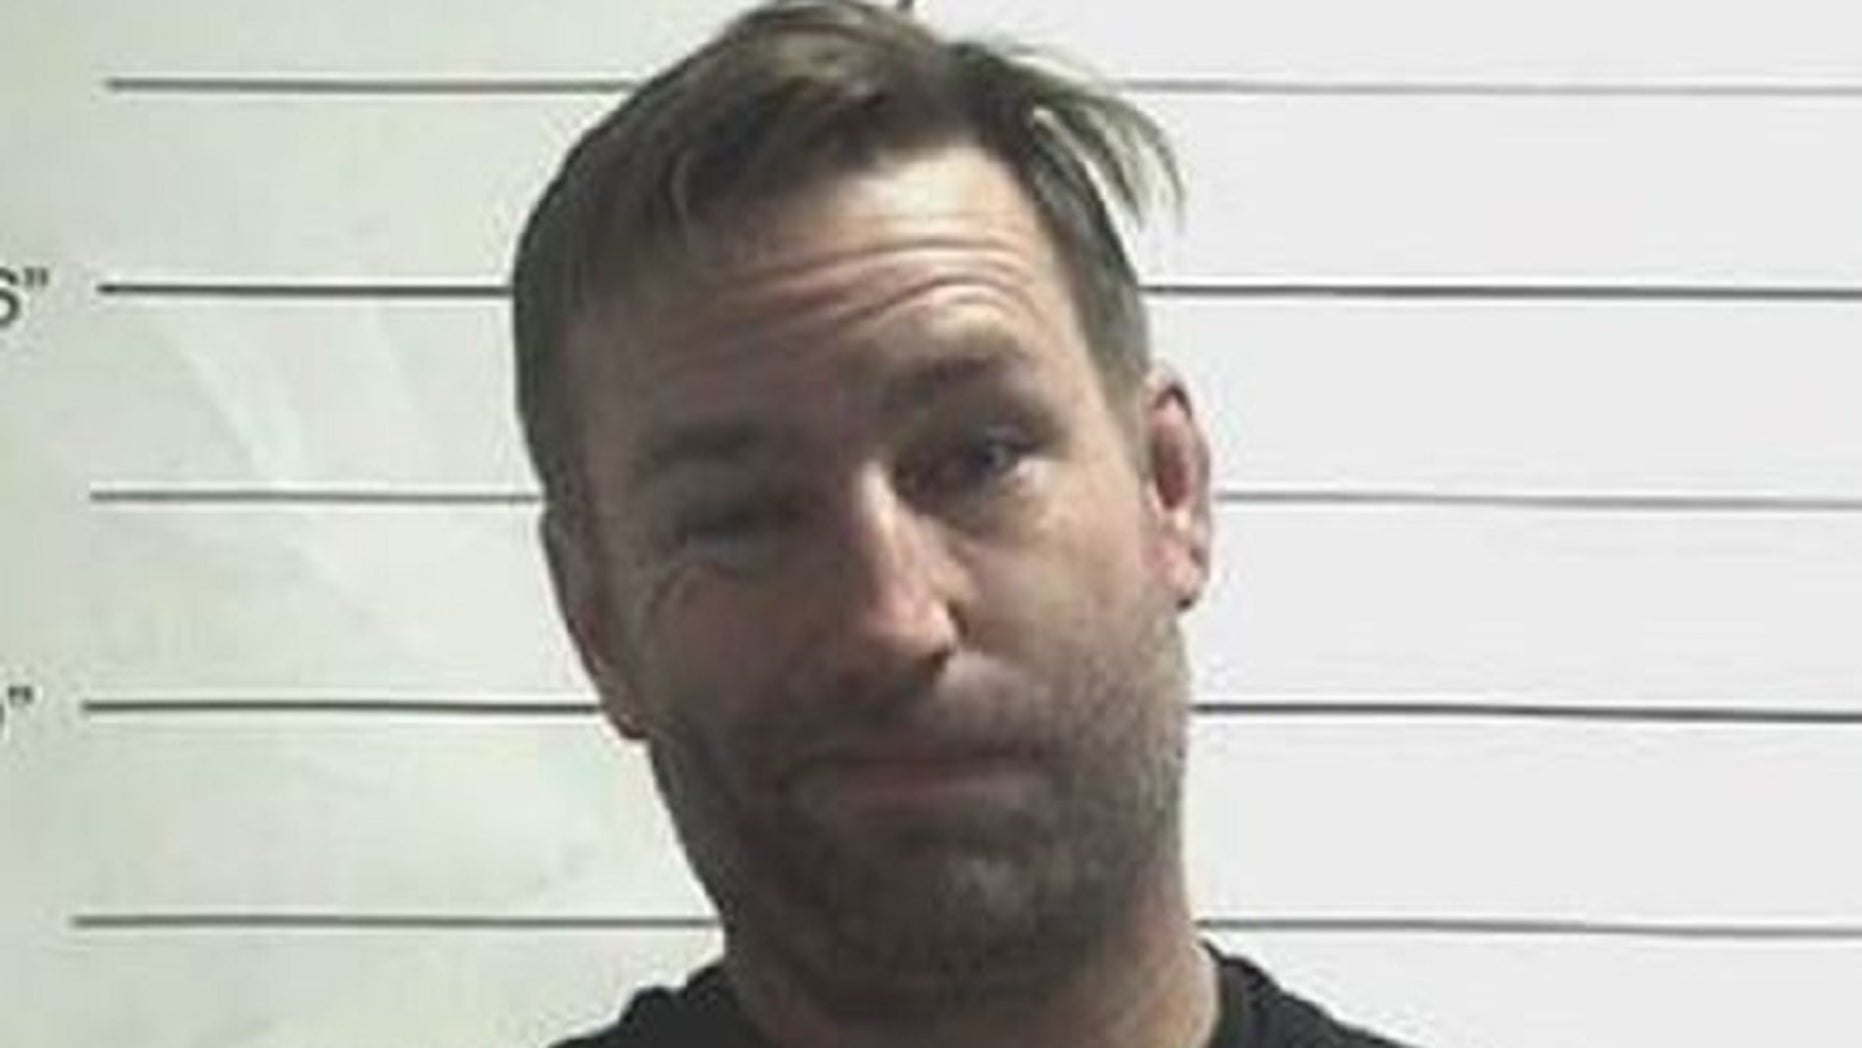 """Sean Harrington, 45, allegedly spraypainted the word """"cocaine""""throughout Bourbon Street while wearing a shirt with the word """"cocaine"""" spraypainted on it, according to court record records."""